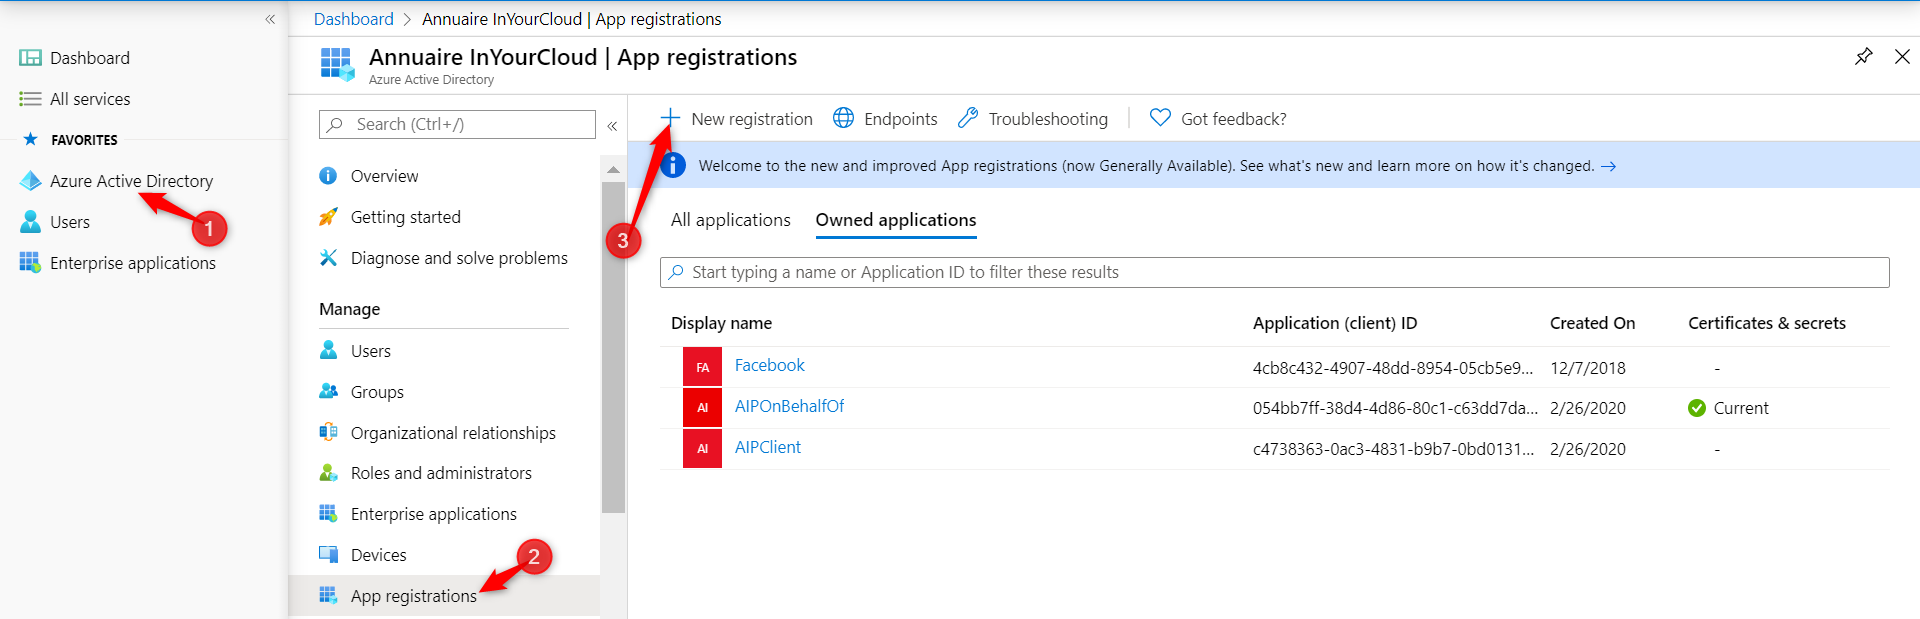 Create App Registration on Veeam